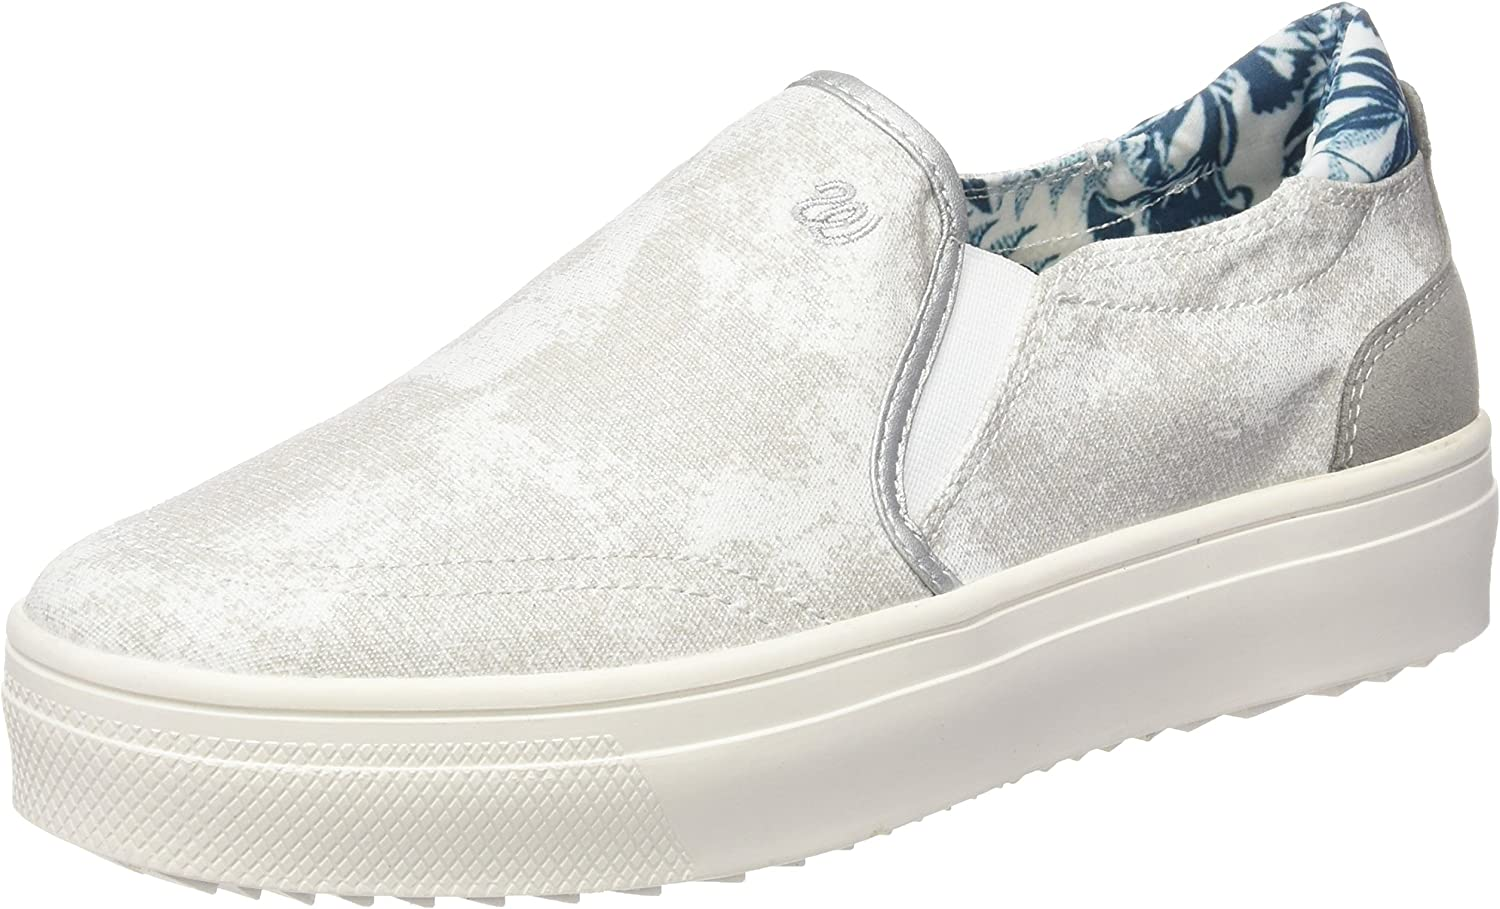 Wrangler Sheena Slip on Laminated, Women's Low-Top Sneakers